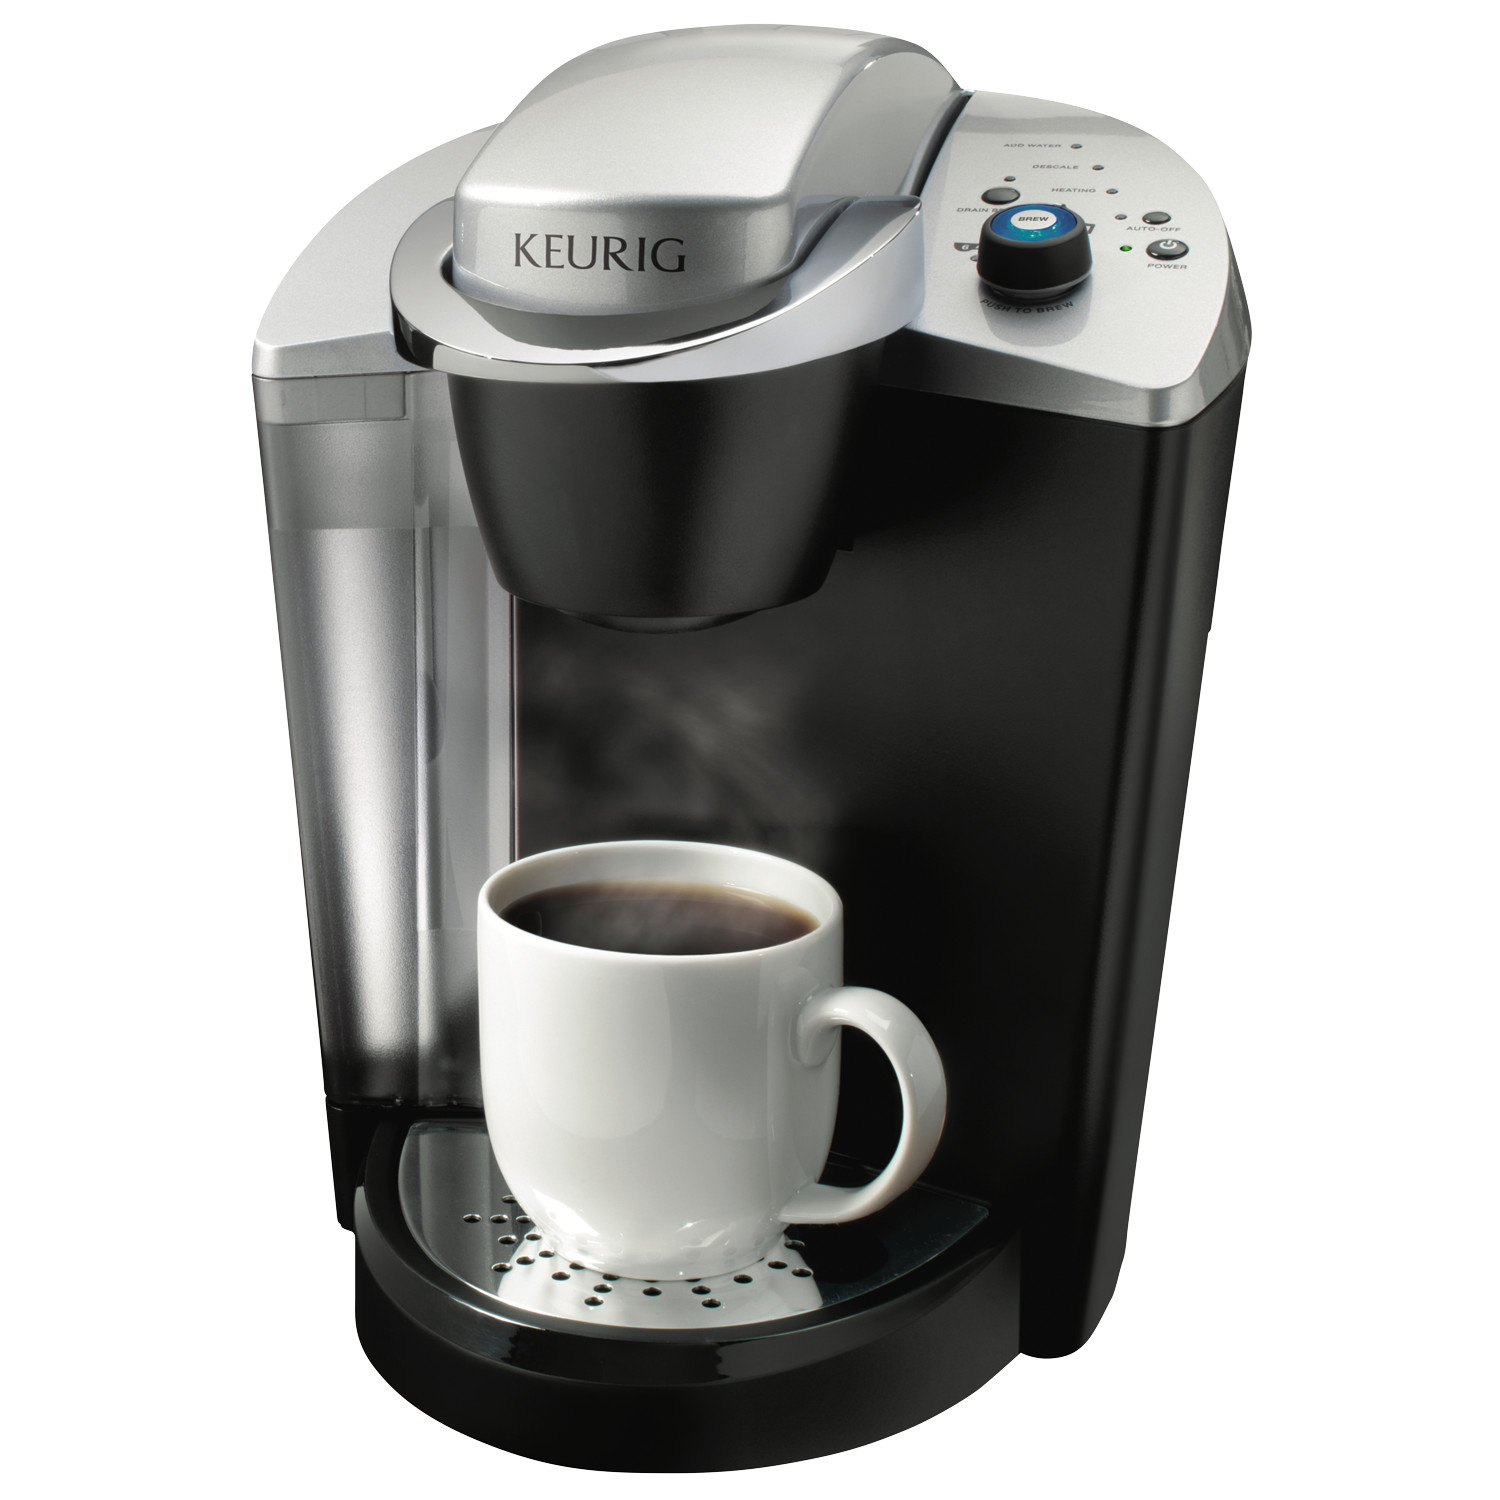 Keurig K145 Officepro Single Cup Coffee Brewer Grand Amp Toy